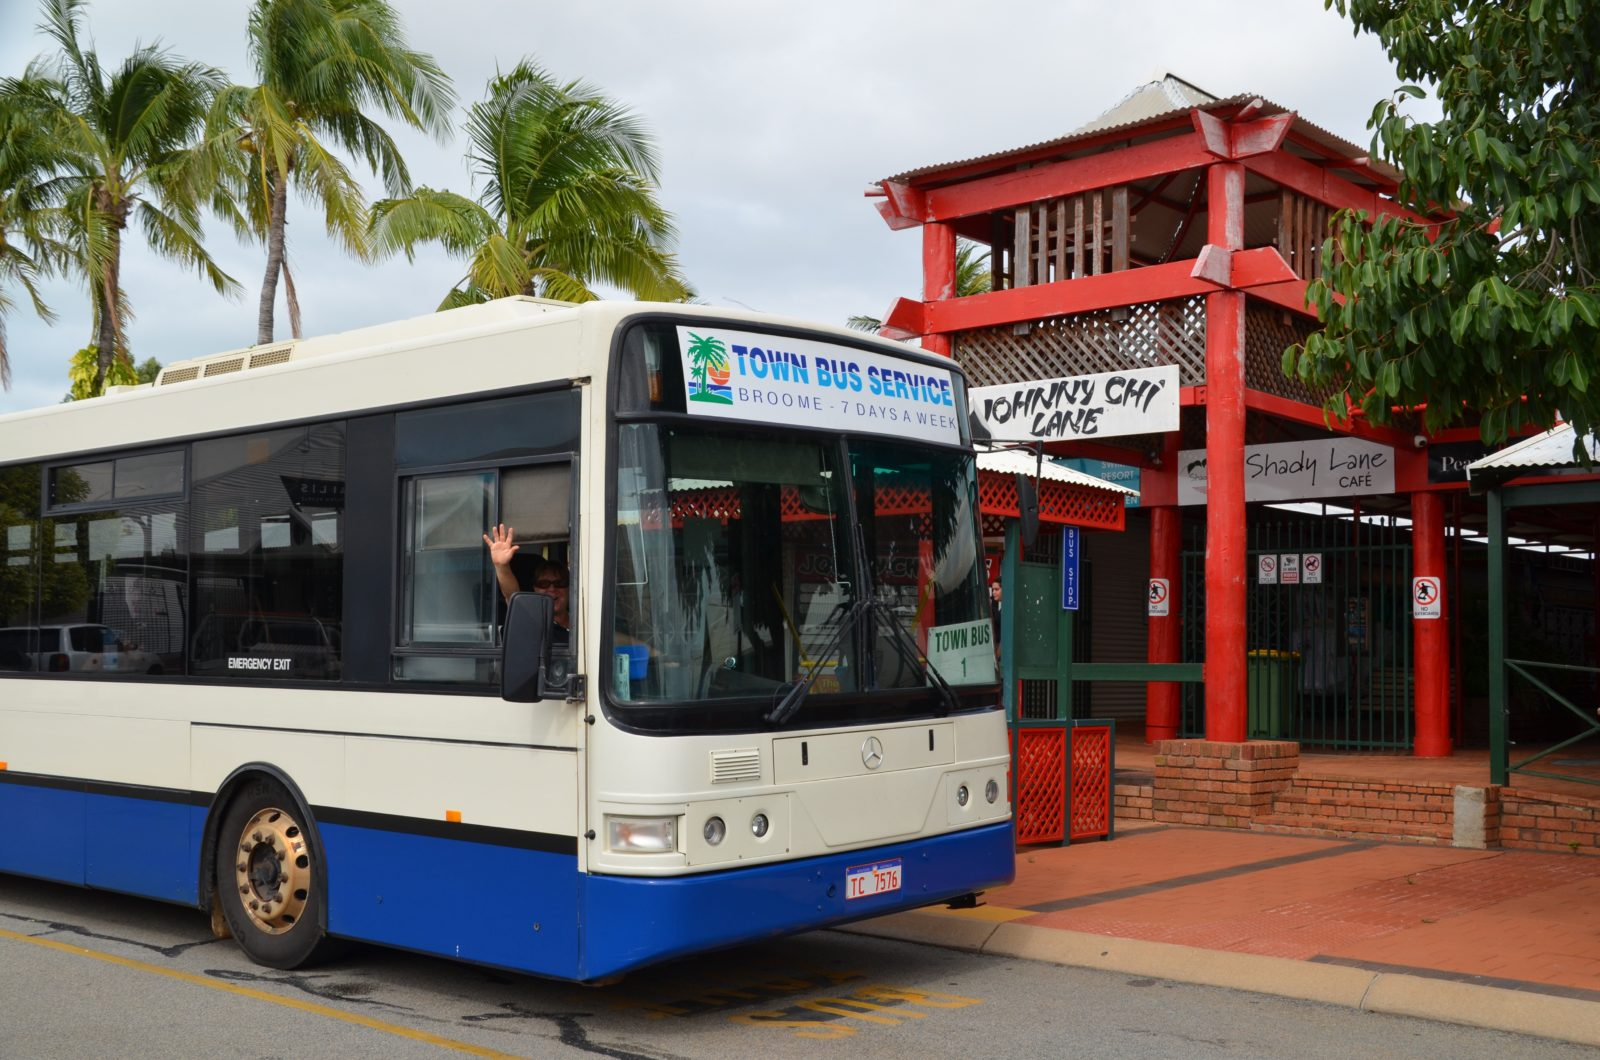 Pearl Town Bus Service, Broome, Western Australia